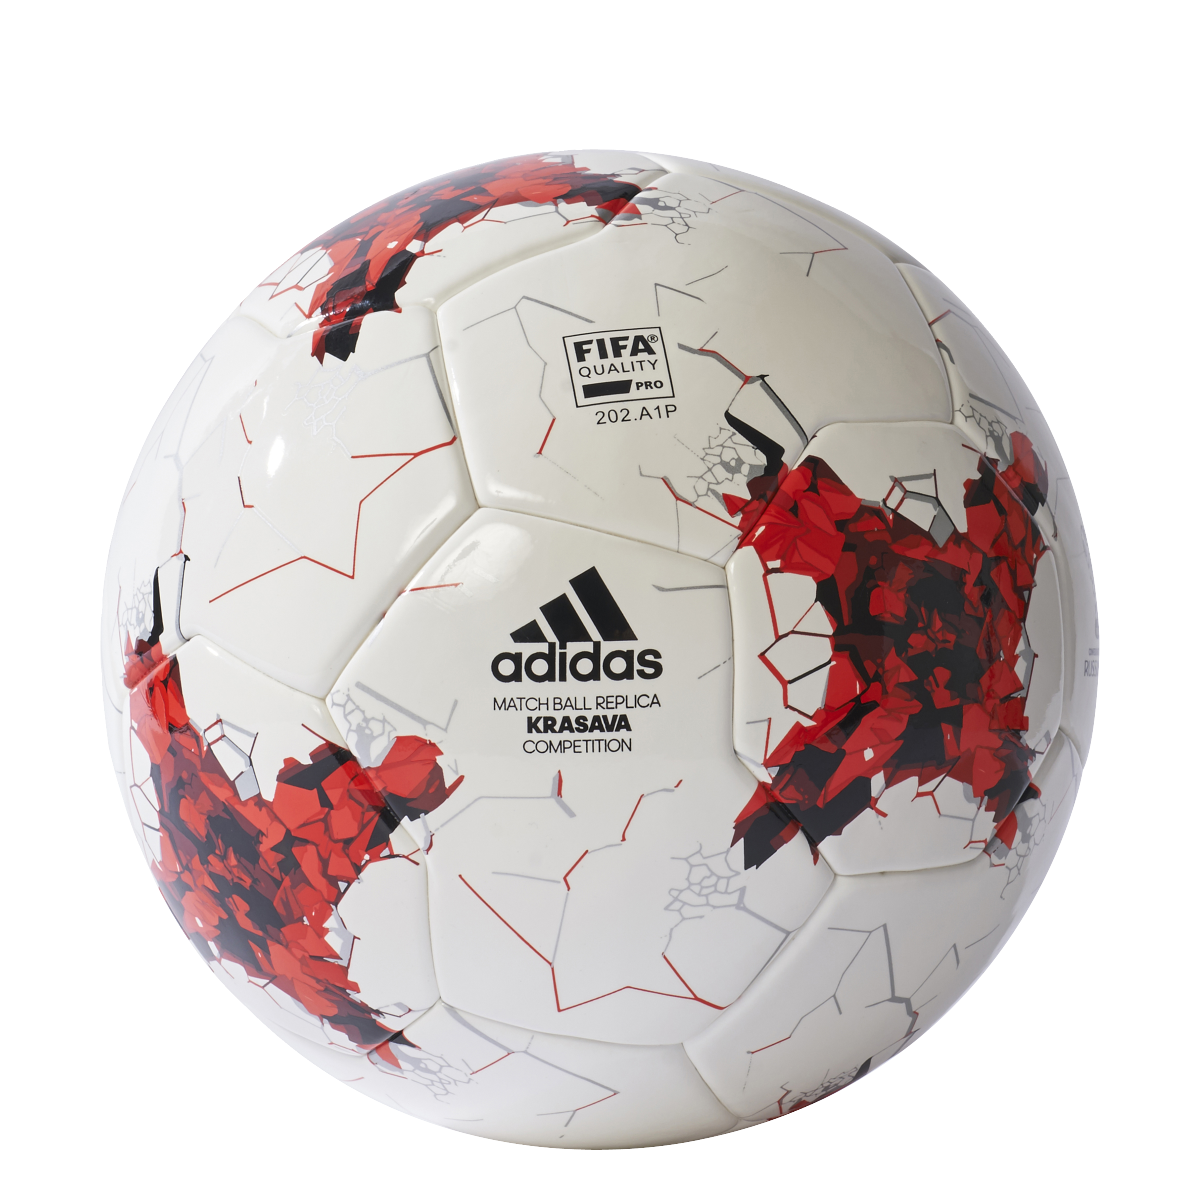 adidas Fußball Confederations Cup Competition Trainingsball weiß rot